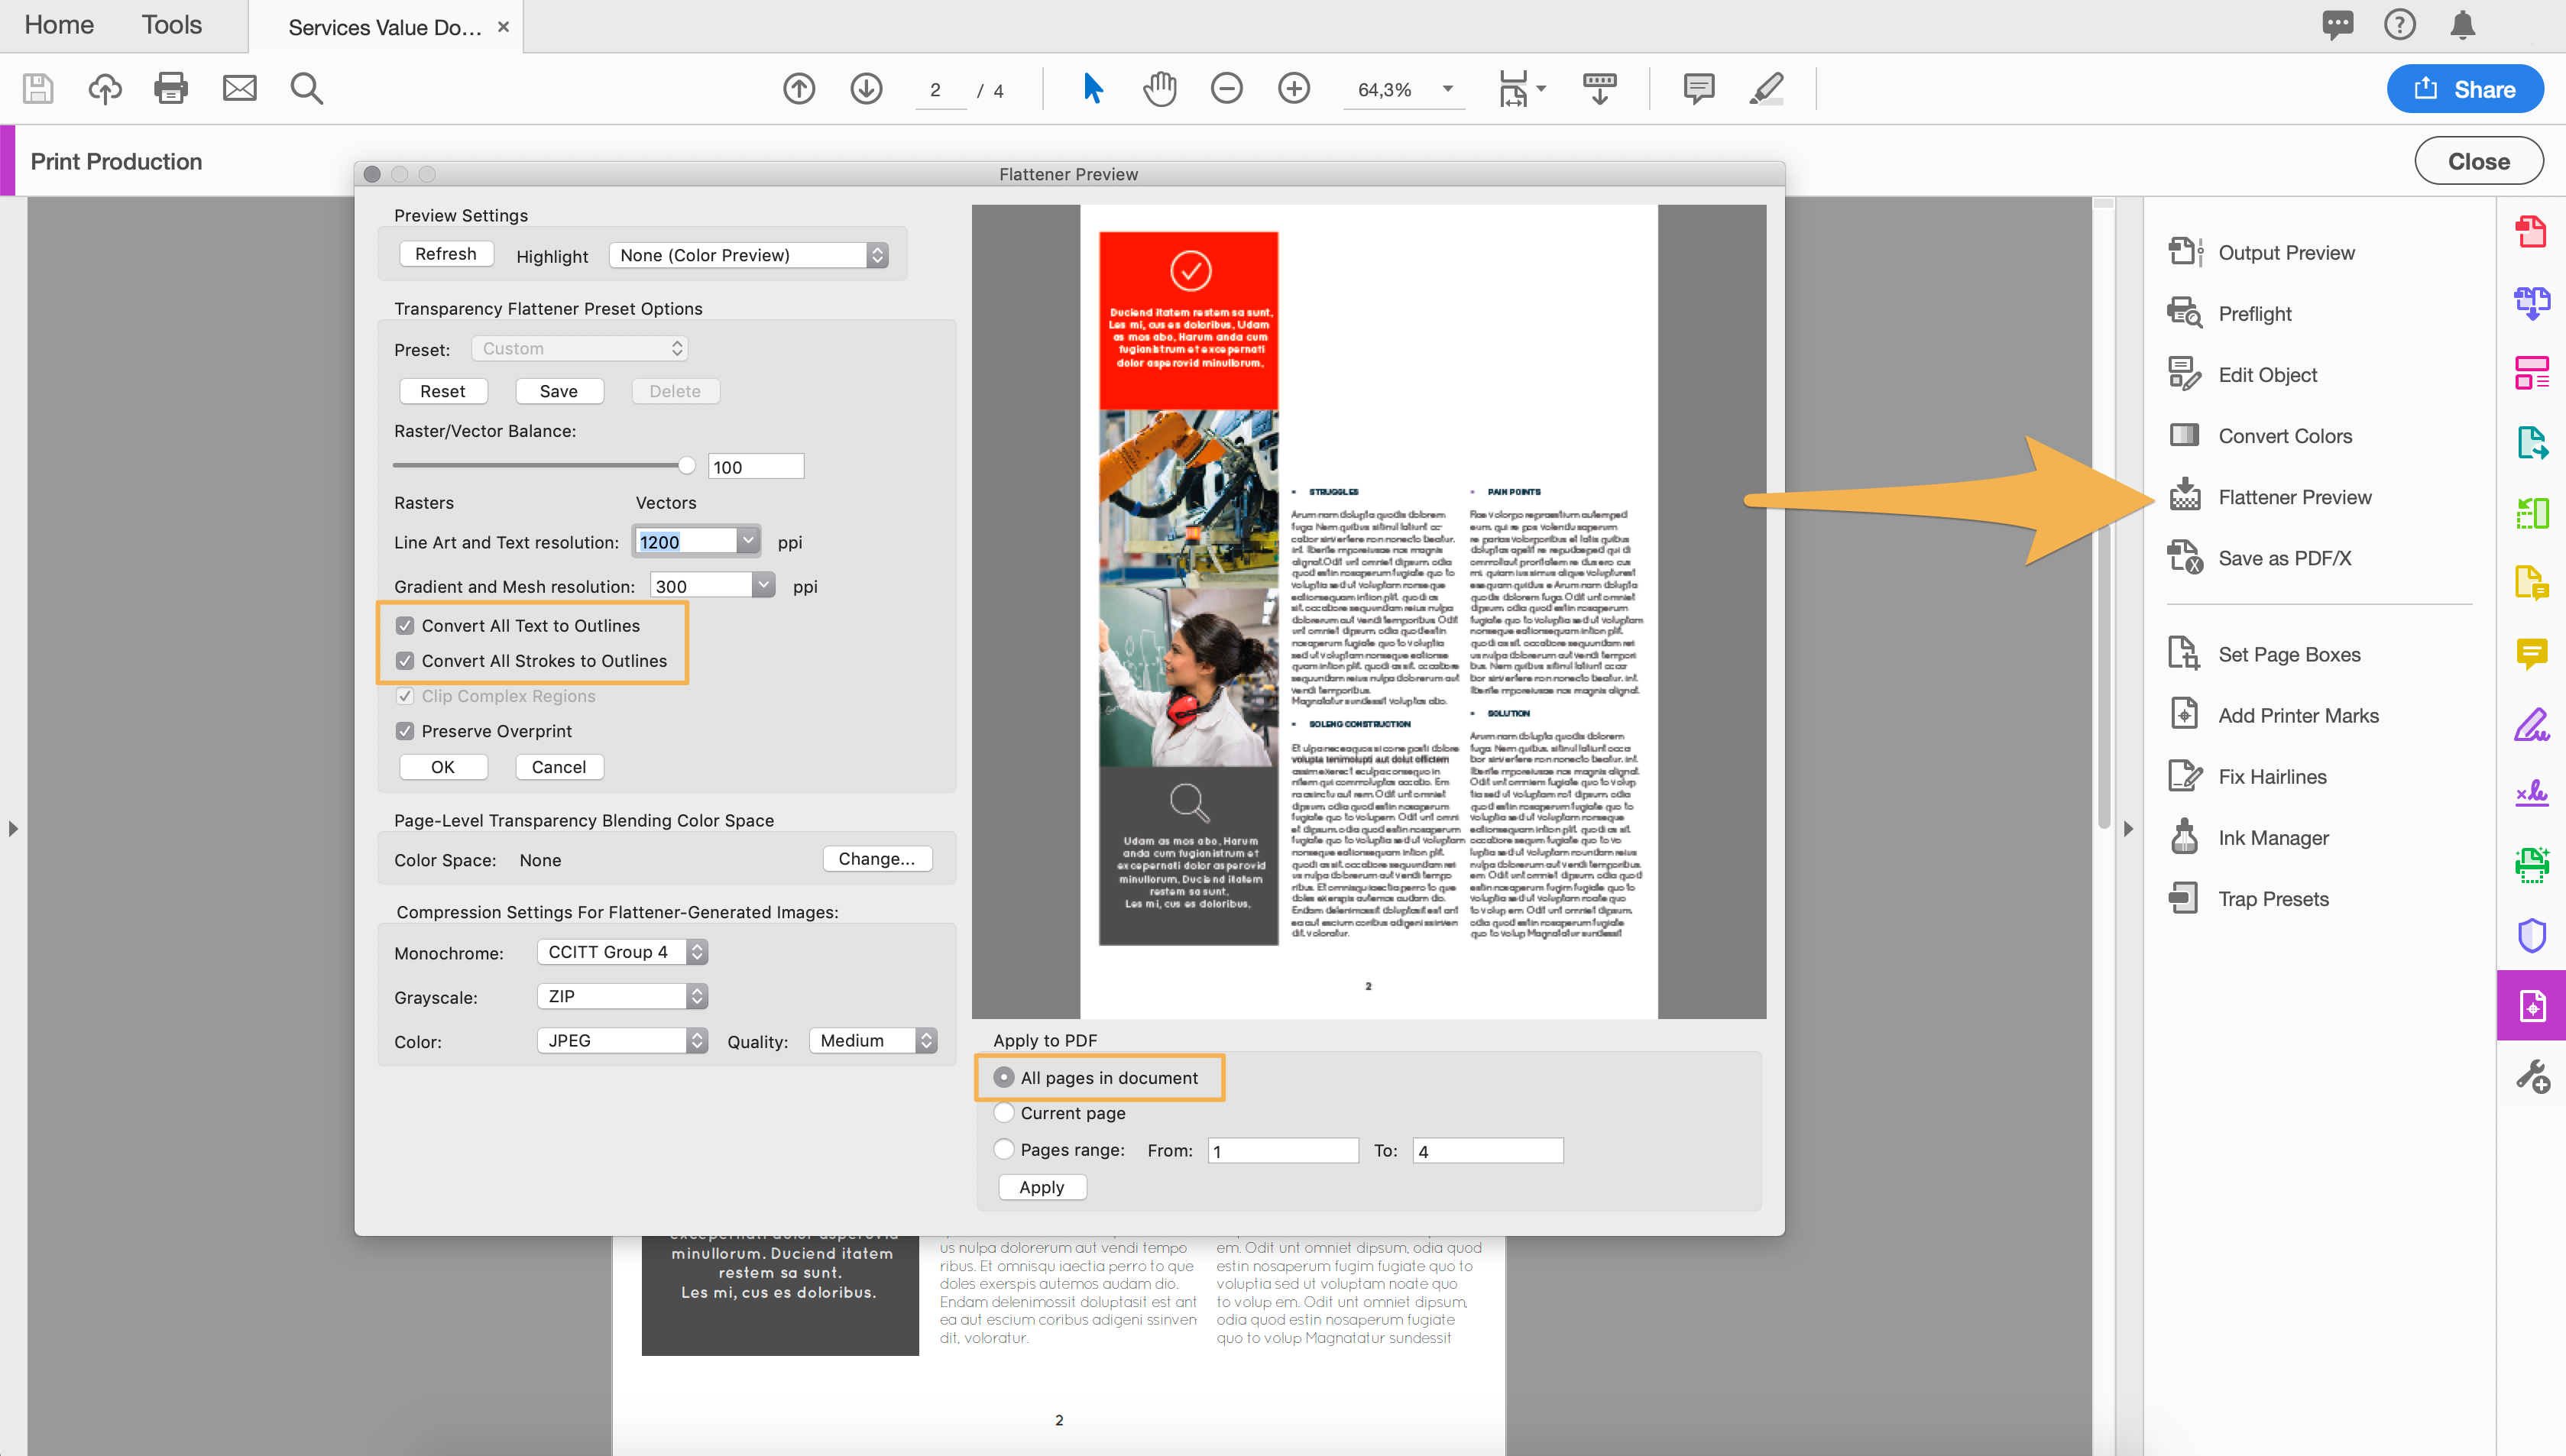 Best practices for uploading PDFs and resolving common issues